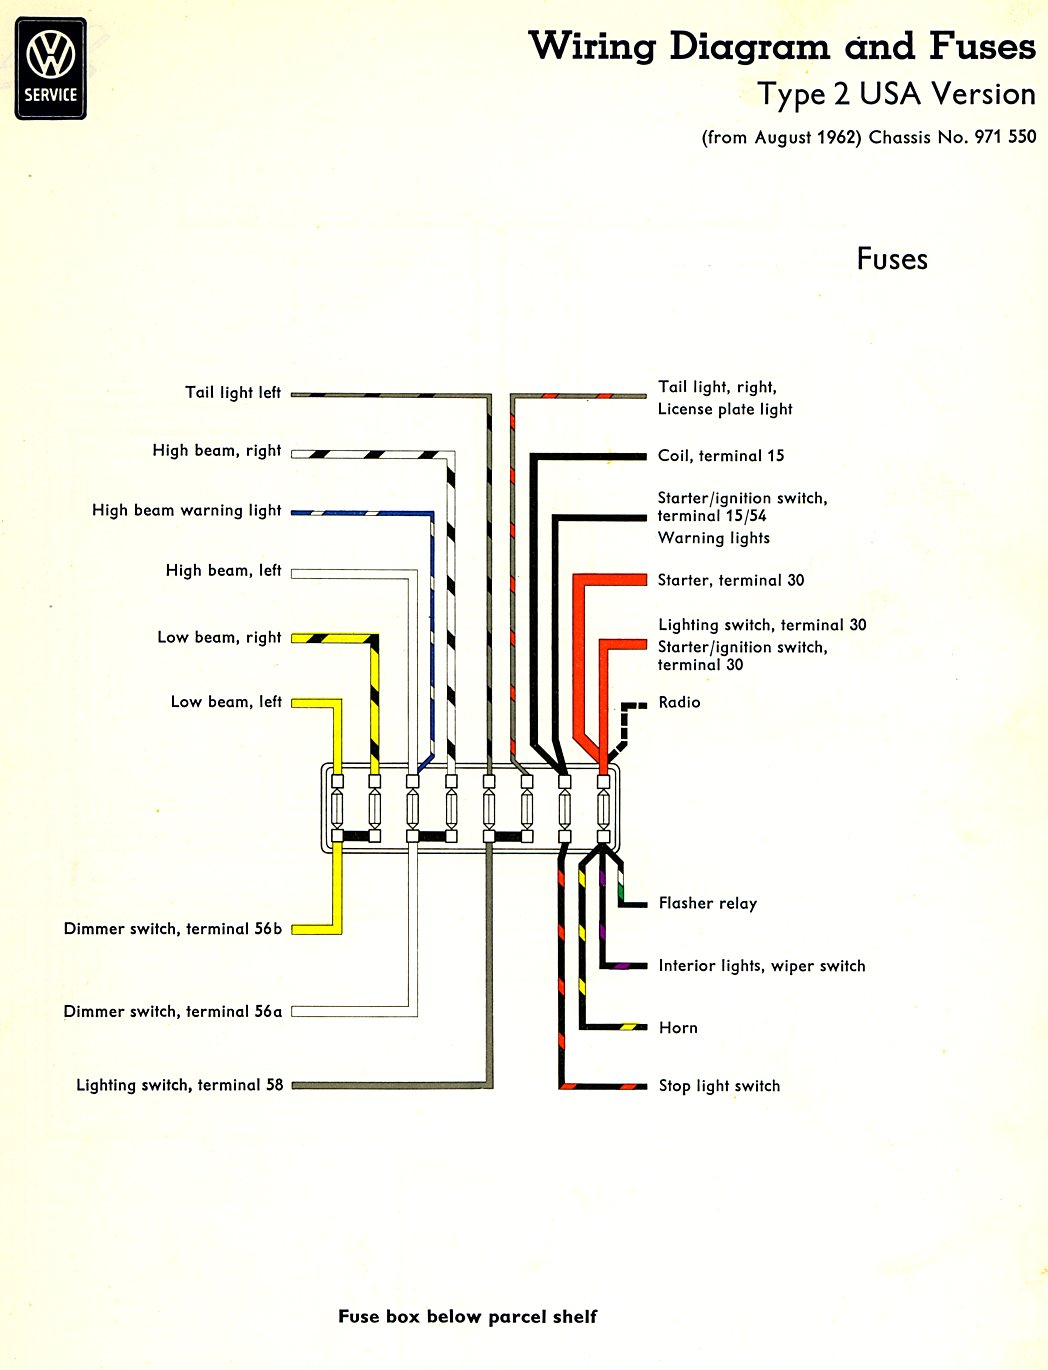 Thesamba com type 2 wiring diagrams on fuse wiring diagram Auto Fuse Box Wiring Fuse Circuit Diagram